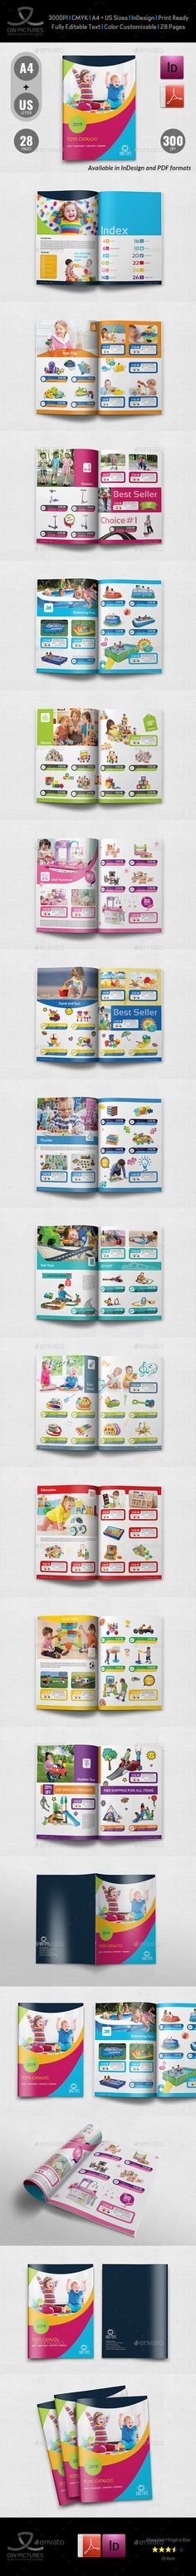 Toys Products Catalog Brochure Template InDesign INDD - 28 Pages